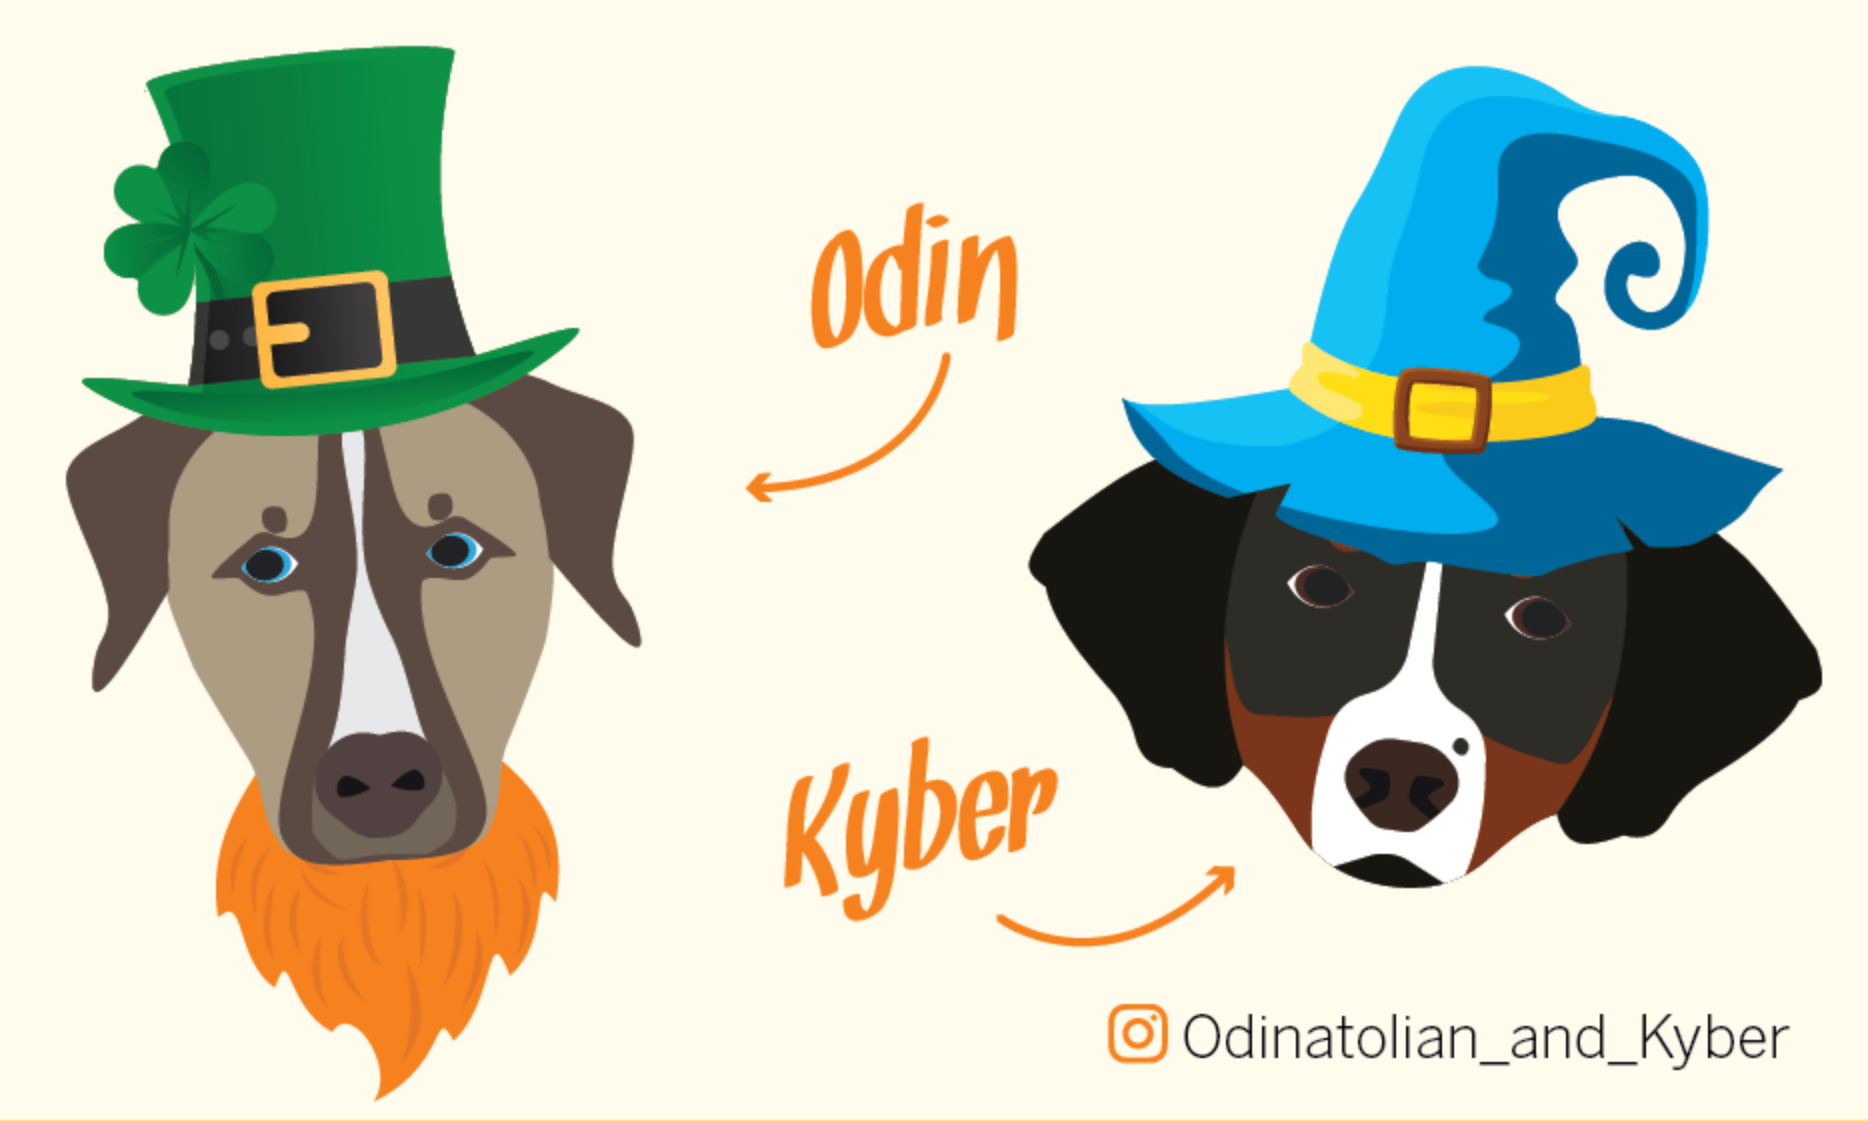 Illustration of Office Dogs Odin and Kyber in Halloween Costumes, talking about Halloween Safety.